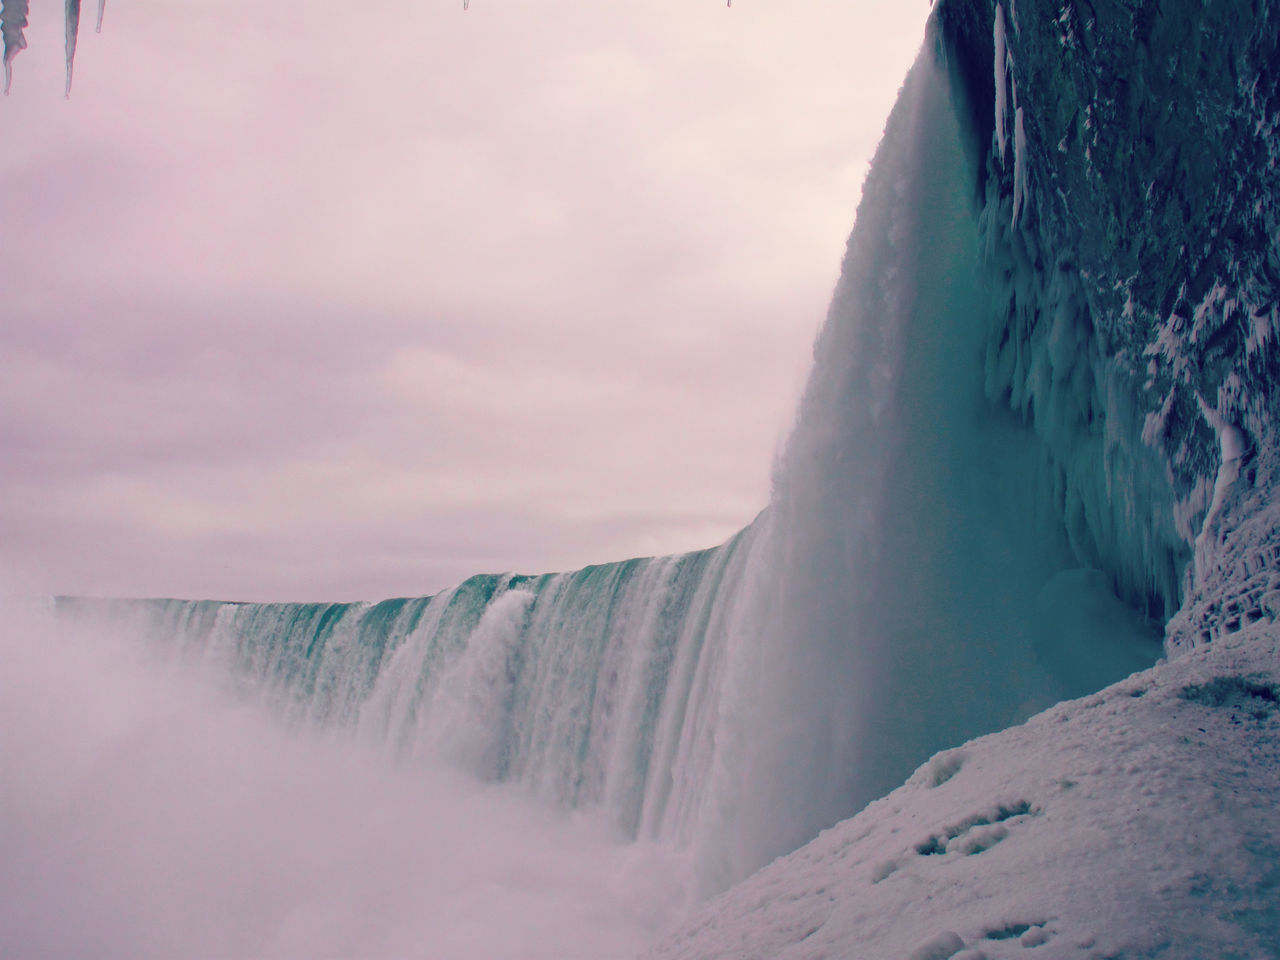 Beautifoul Photo Nature Niagara Falls Travel Destinations Water Waterfall Winter WOW The Great Outdoors - 2016 EyeEm Awards My Year My View Travel Photography EyeEm Gallery Turist Palaces To See